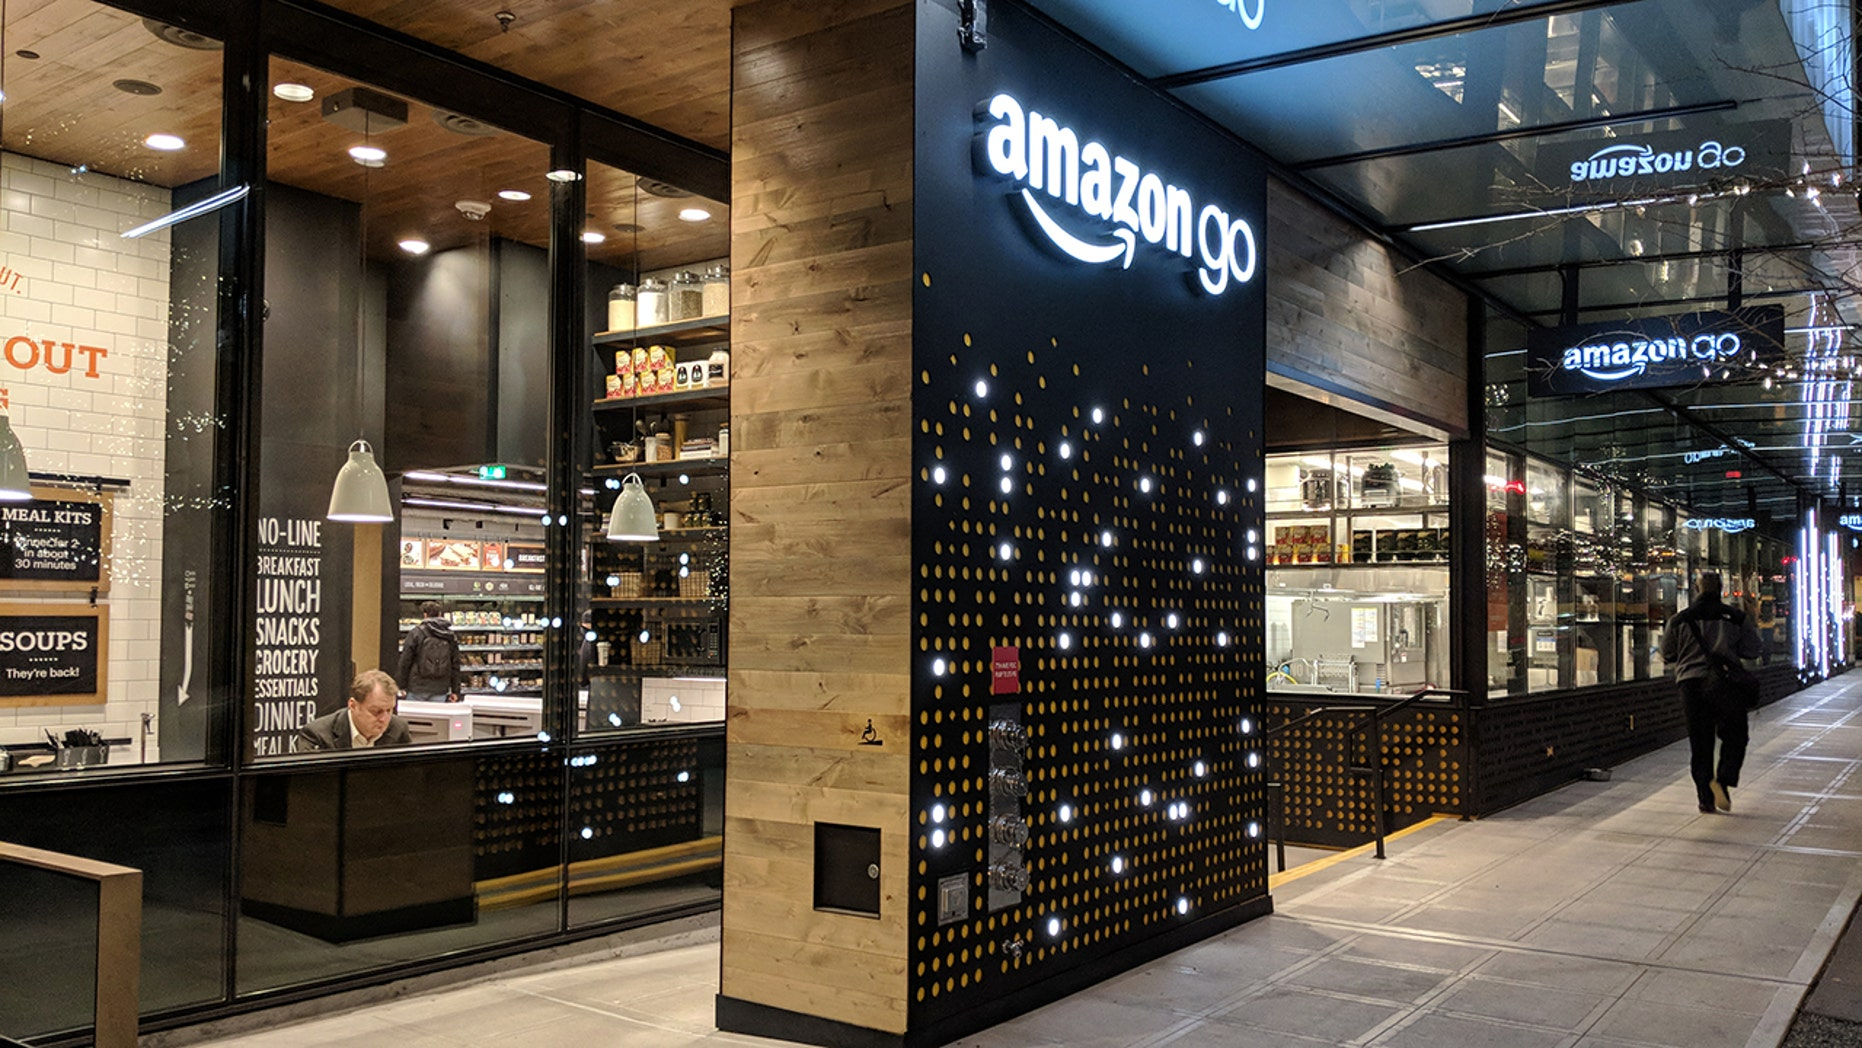 File photo: Seattle, Washington USA - NOVEMBER 27, 2017: Amazon Go stores will now accept cash after the company received backlash. (Credit: Reuters)